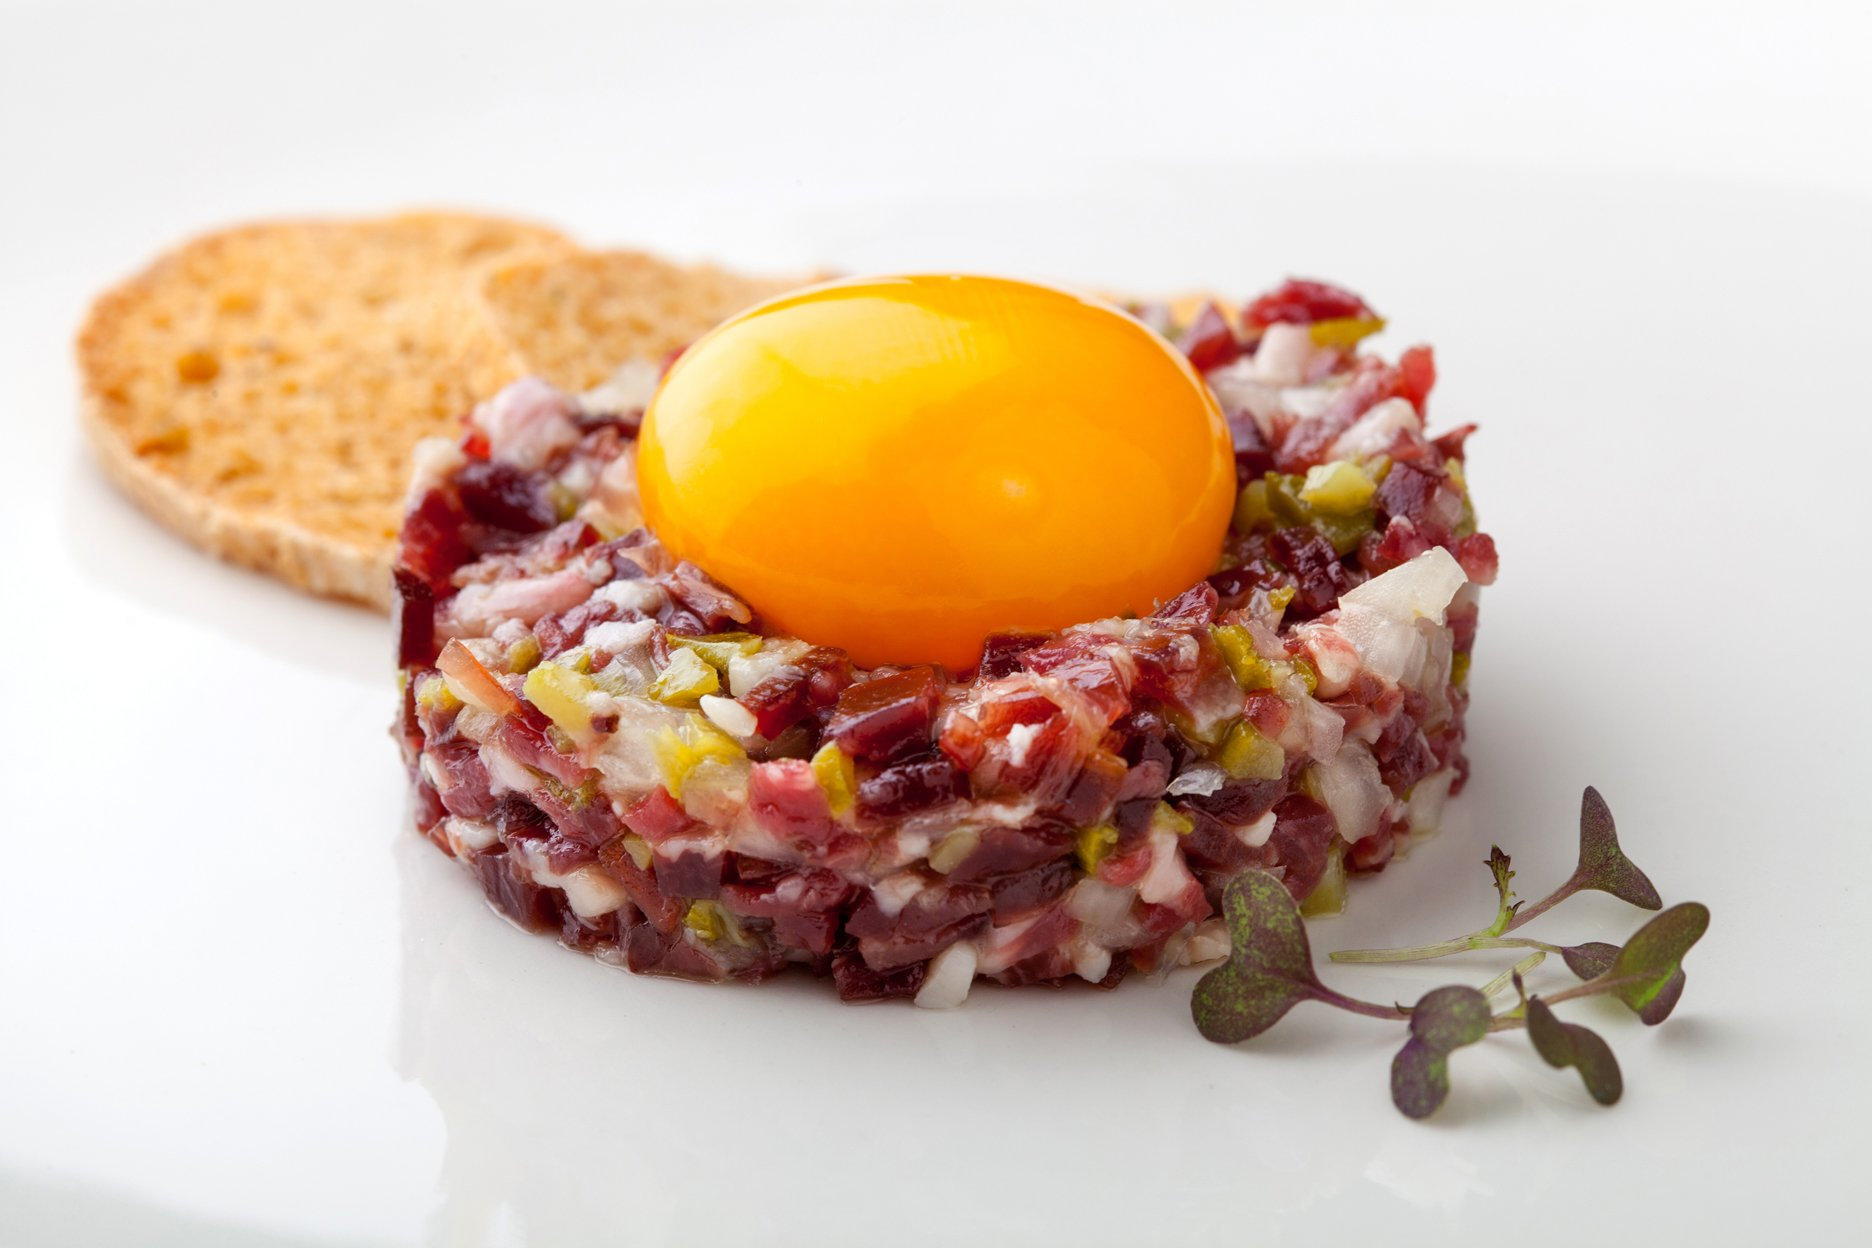 IBERICO HAM TARTARE WITH CURED EGG YOLK